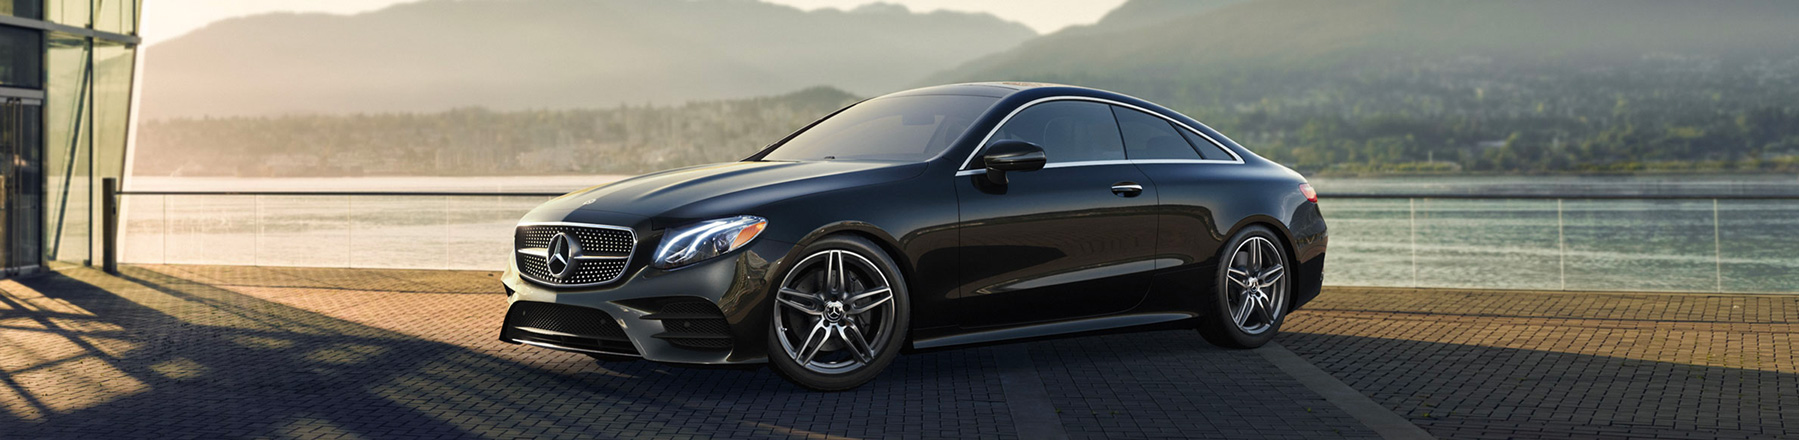 Why You Should Choose Our Windsor Mercedes-Benz Dealership